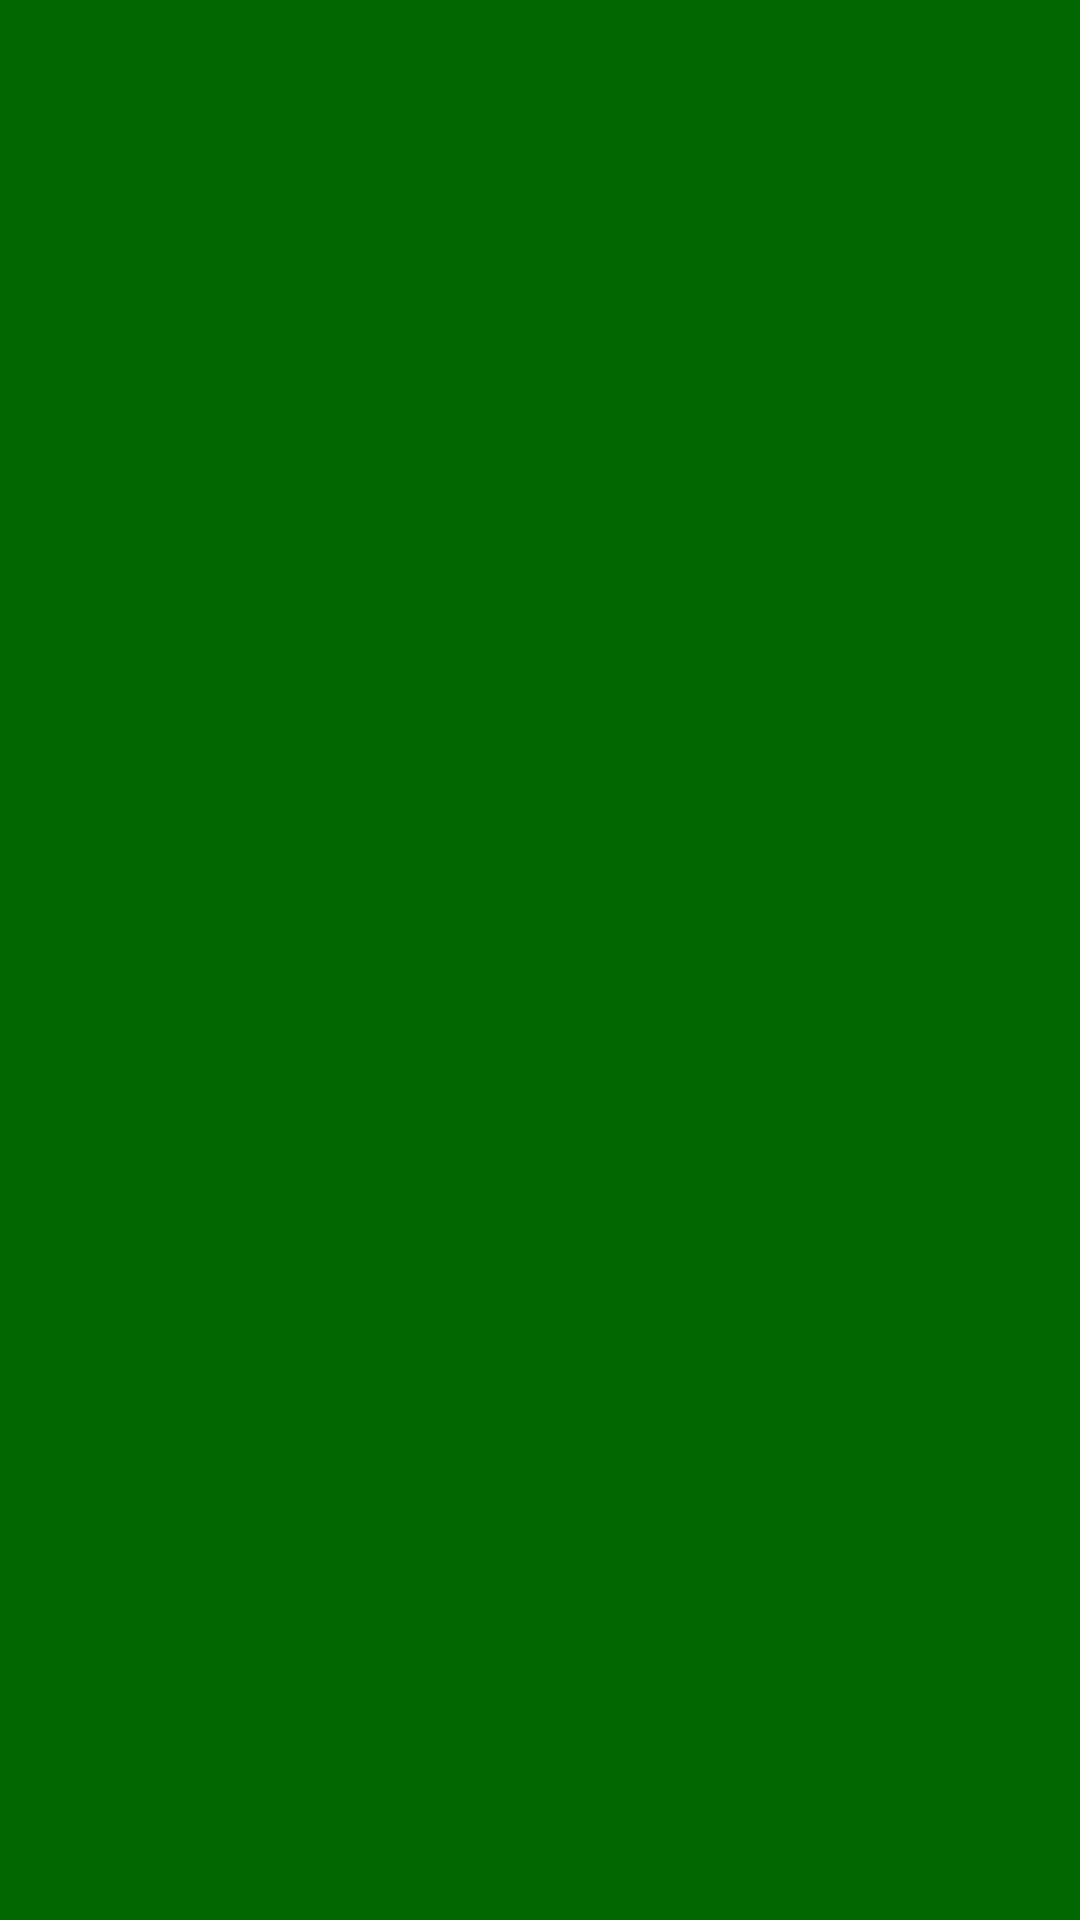 1080x1920 Pakistan Green Solid Color Background